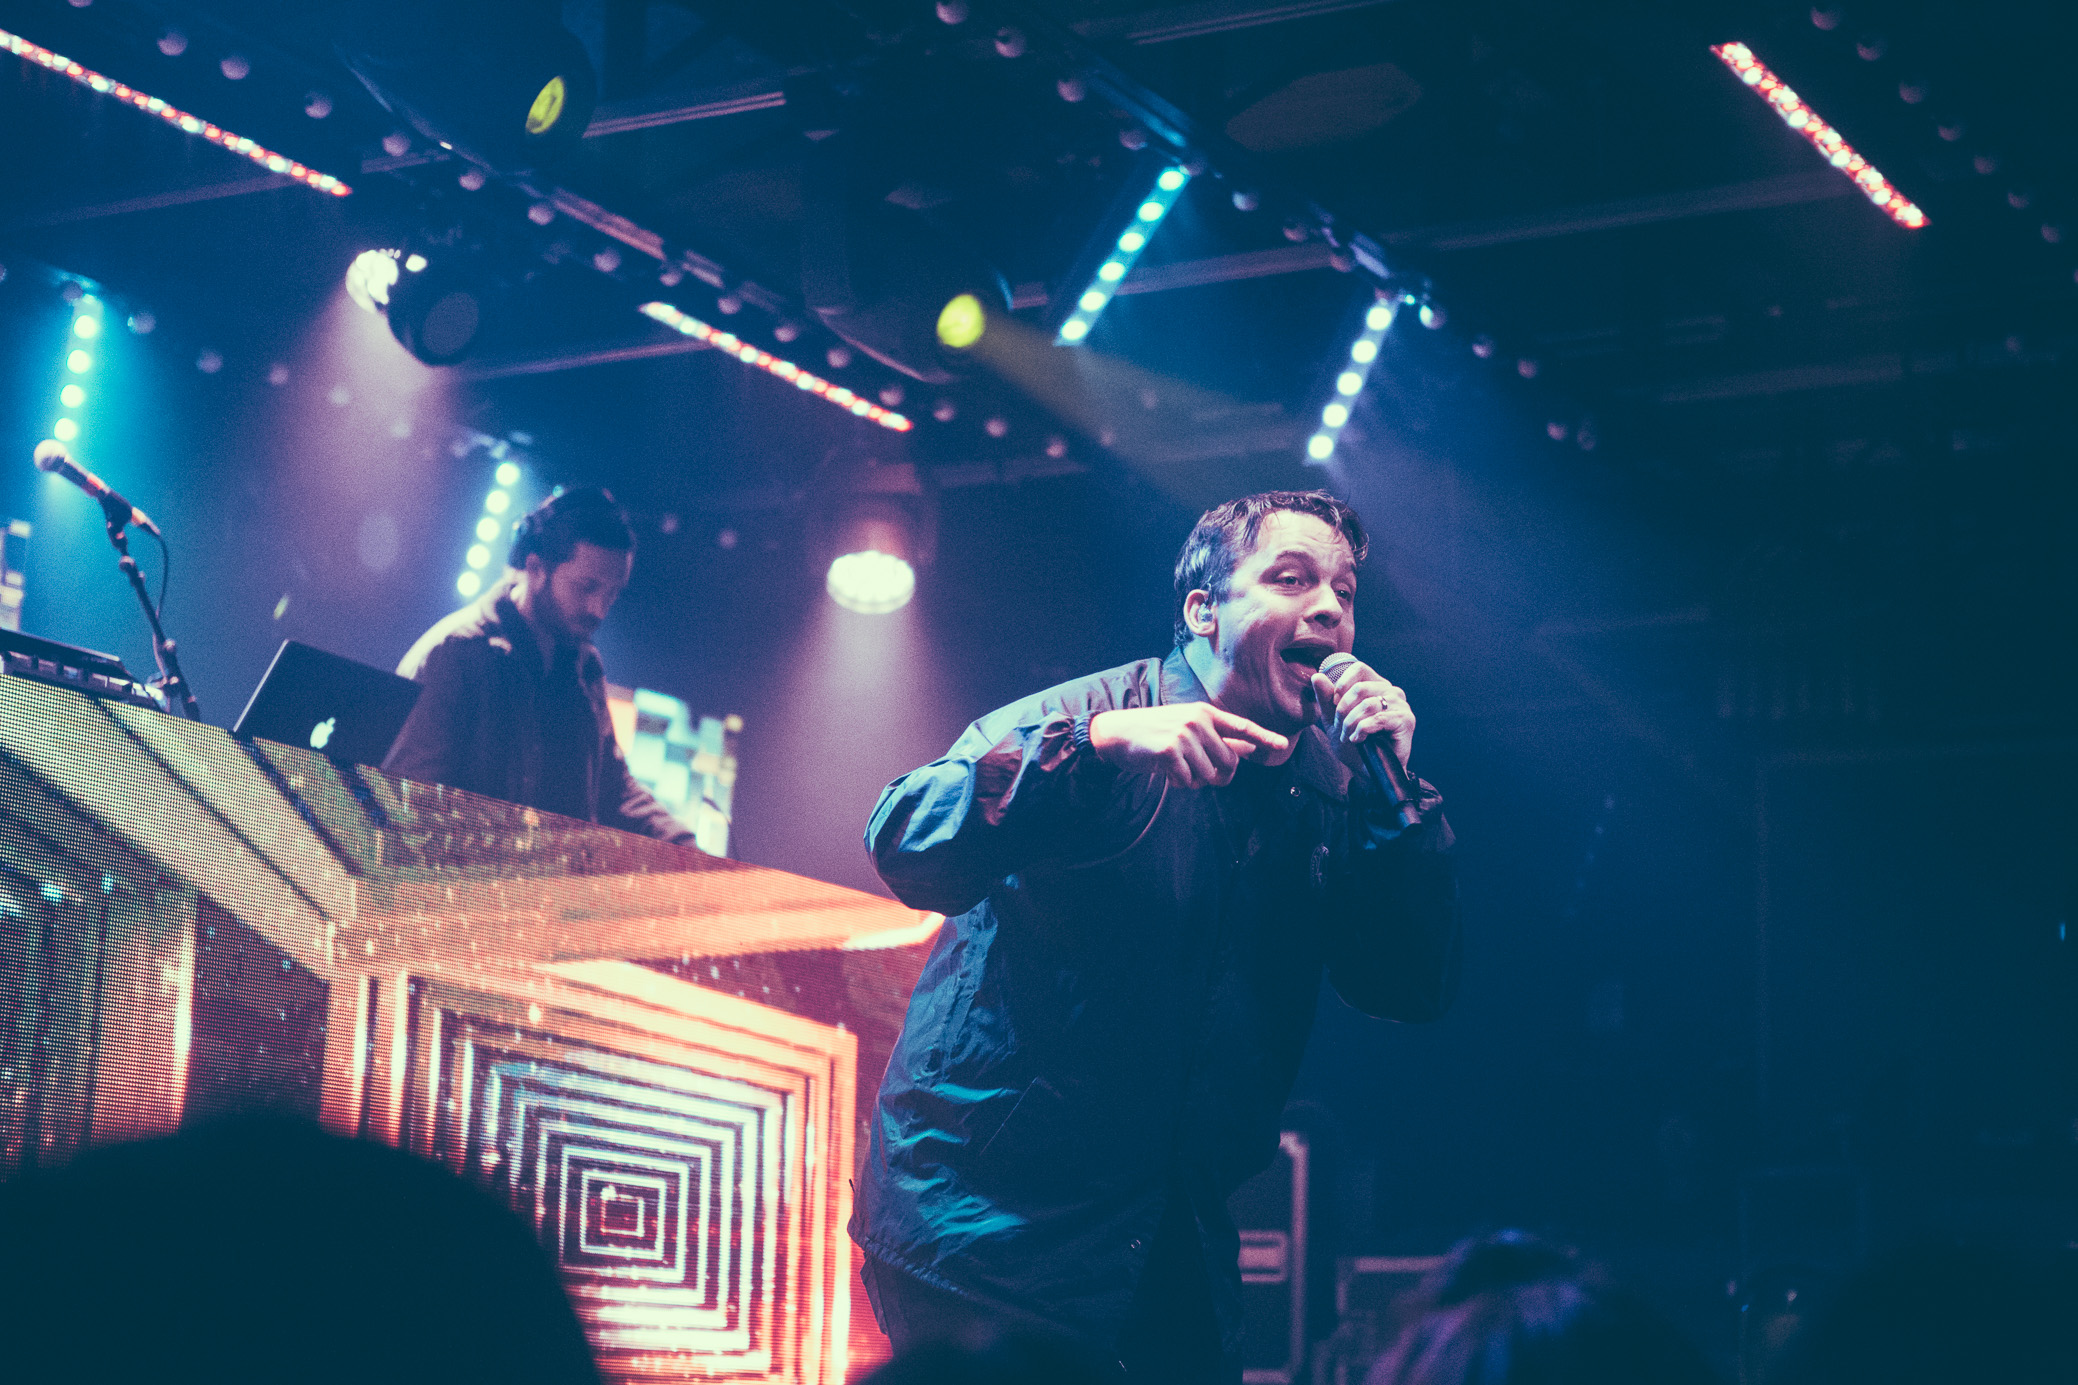 Atmosphere performs in concert at Saturn Birmingham in Birmingham, Alabama on December 4th, 2018. (Photo by David A. Smith / DSmithScenes)